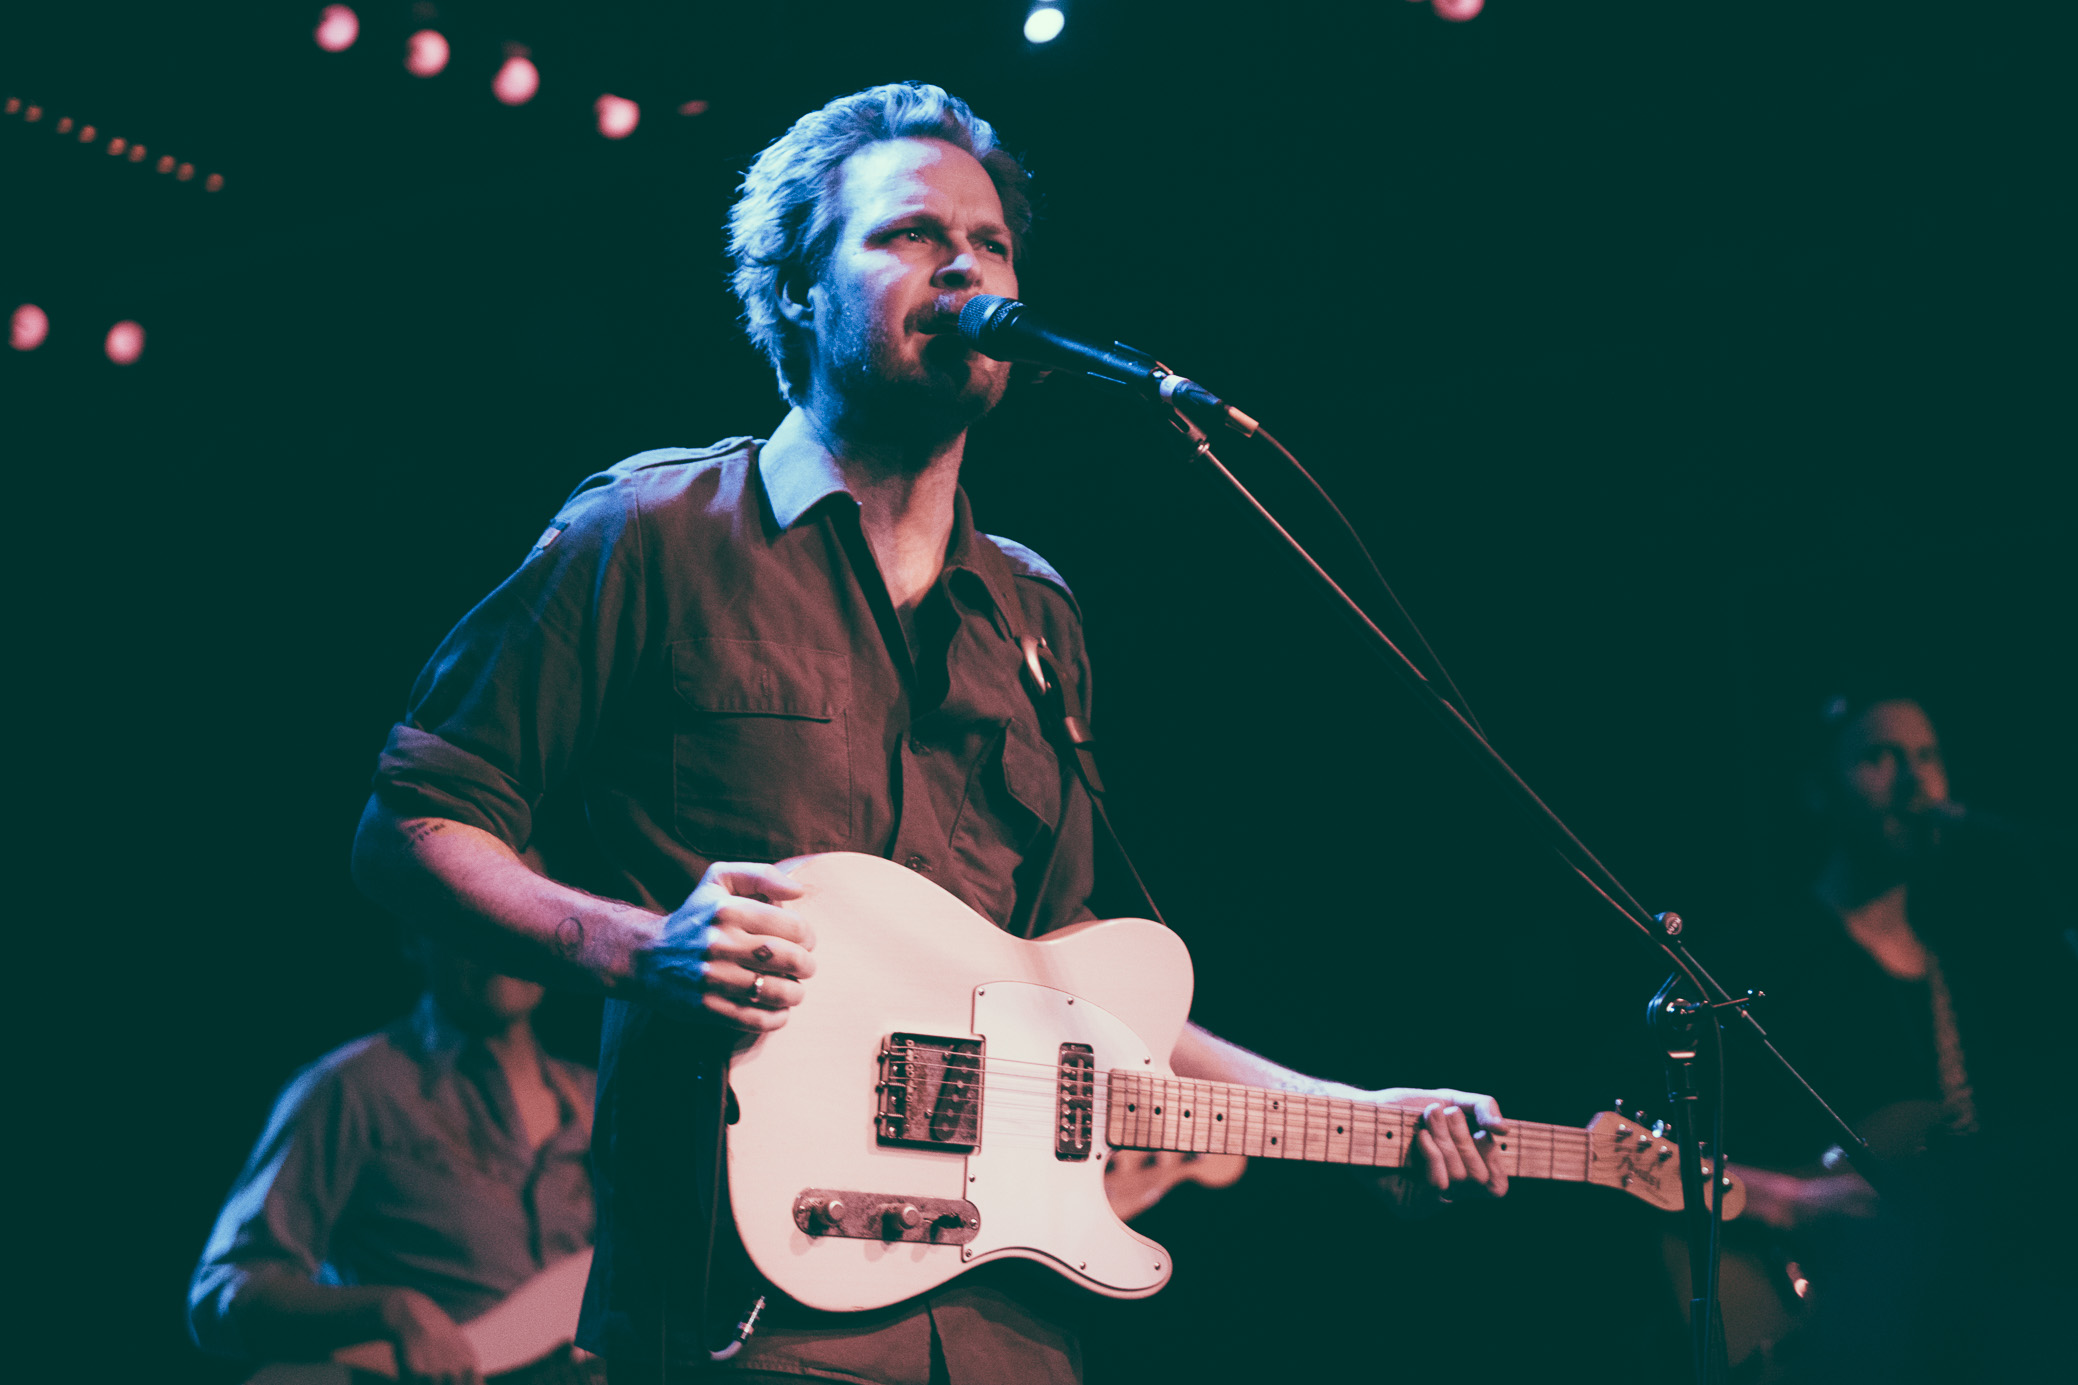 Hiss Golden Messenger performs at Saturn Birmingham in Birmingham, Alabama on February 7th, 2017. (Photo by David A. Smith/DSmithScenes)